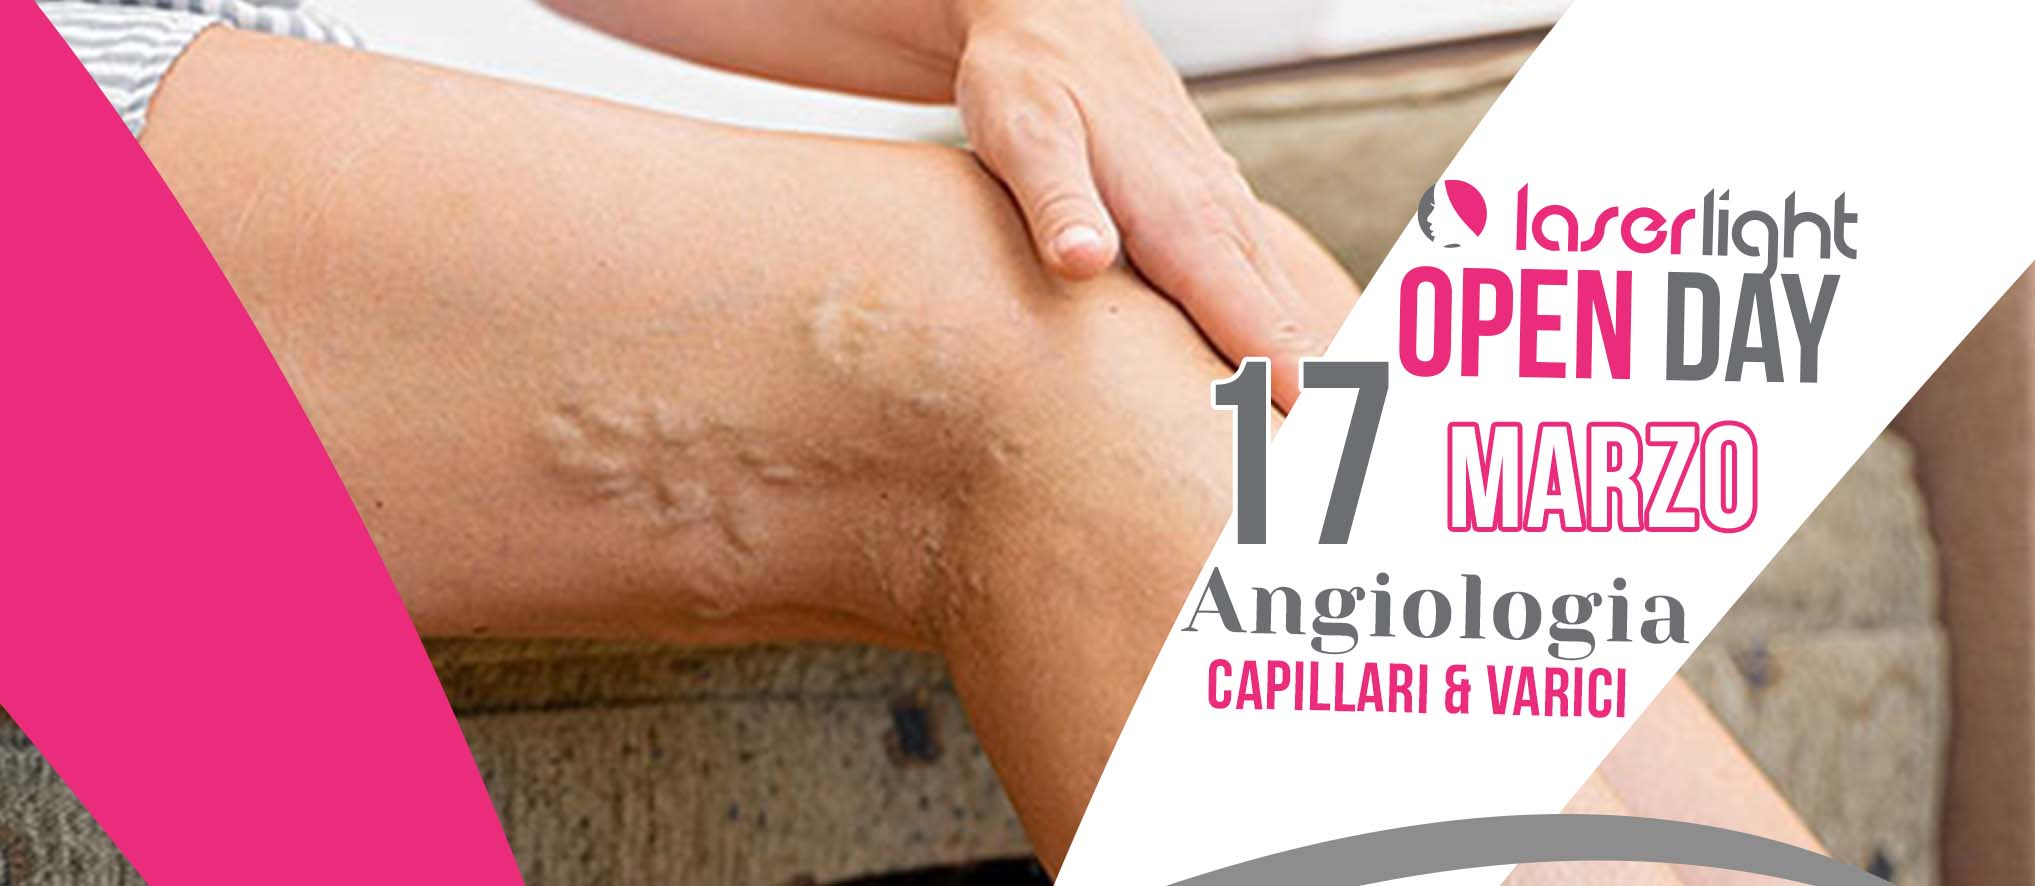 open day angiologia 17 marzo